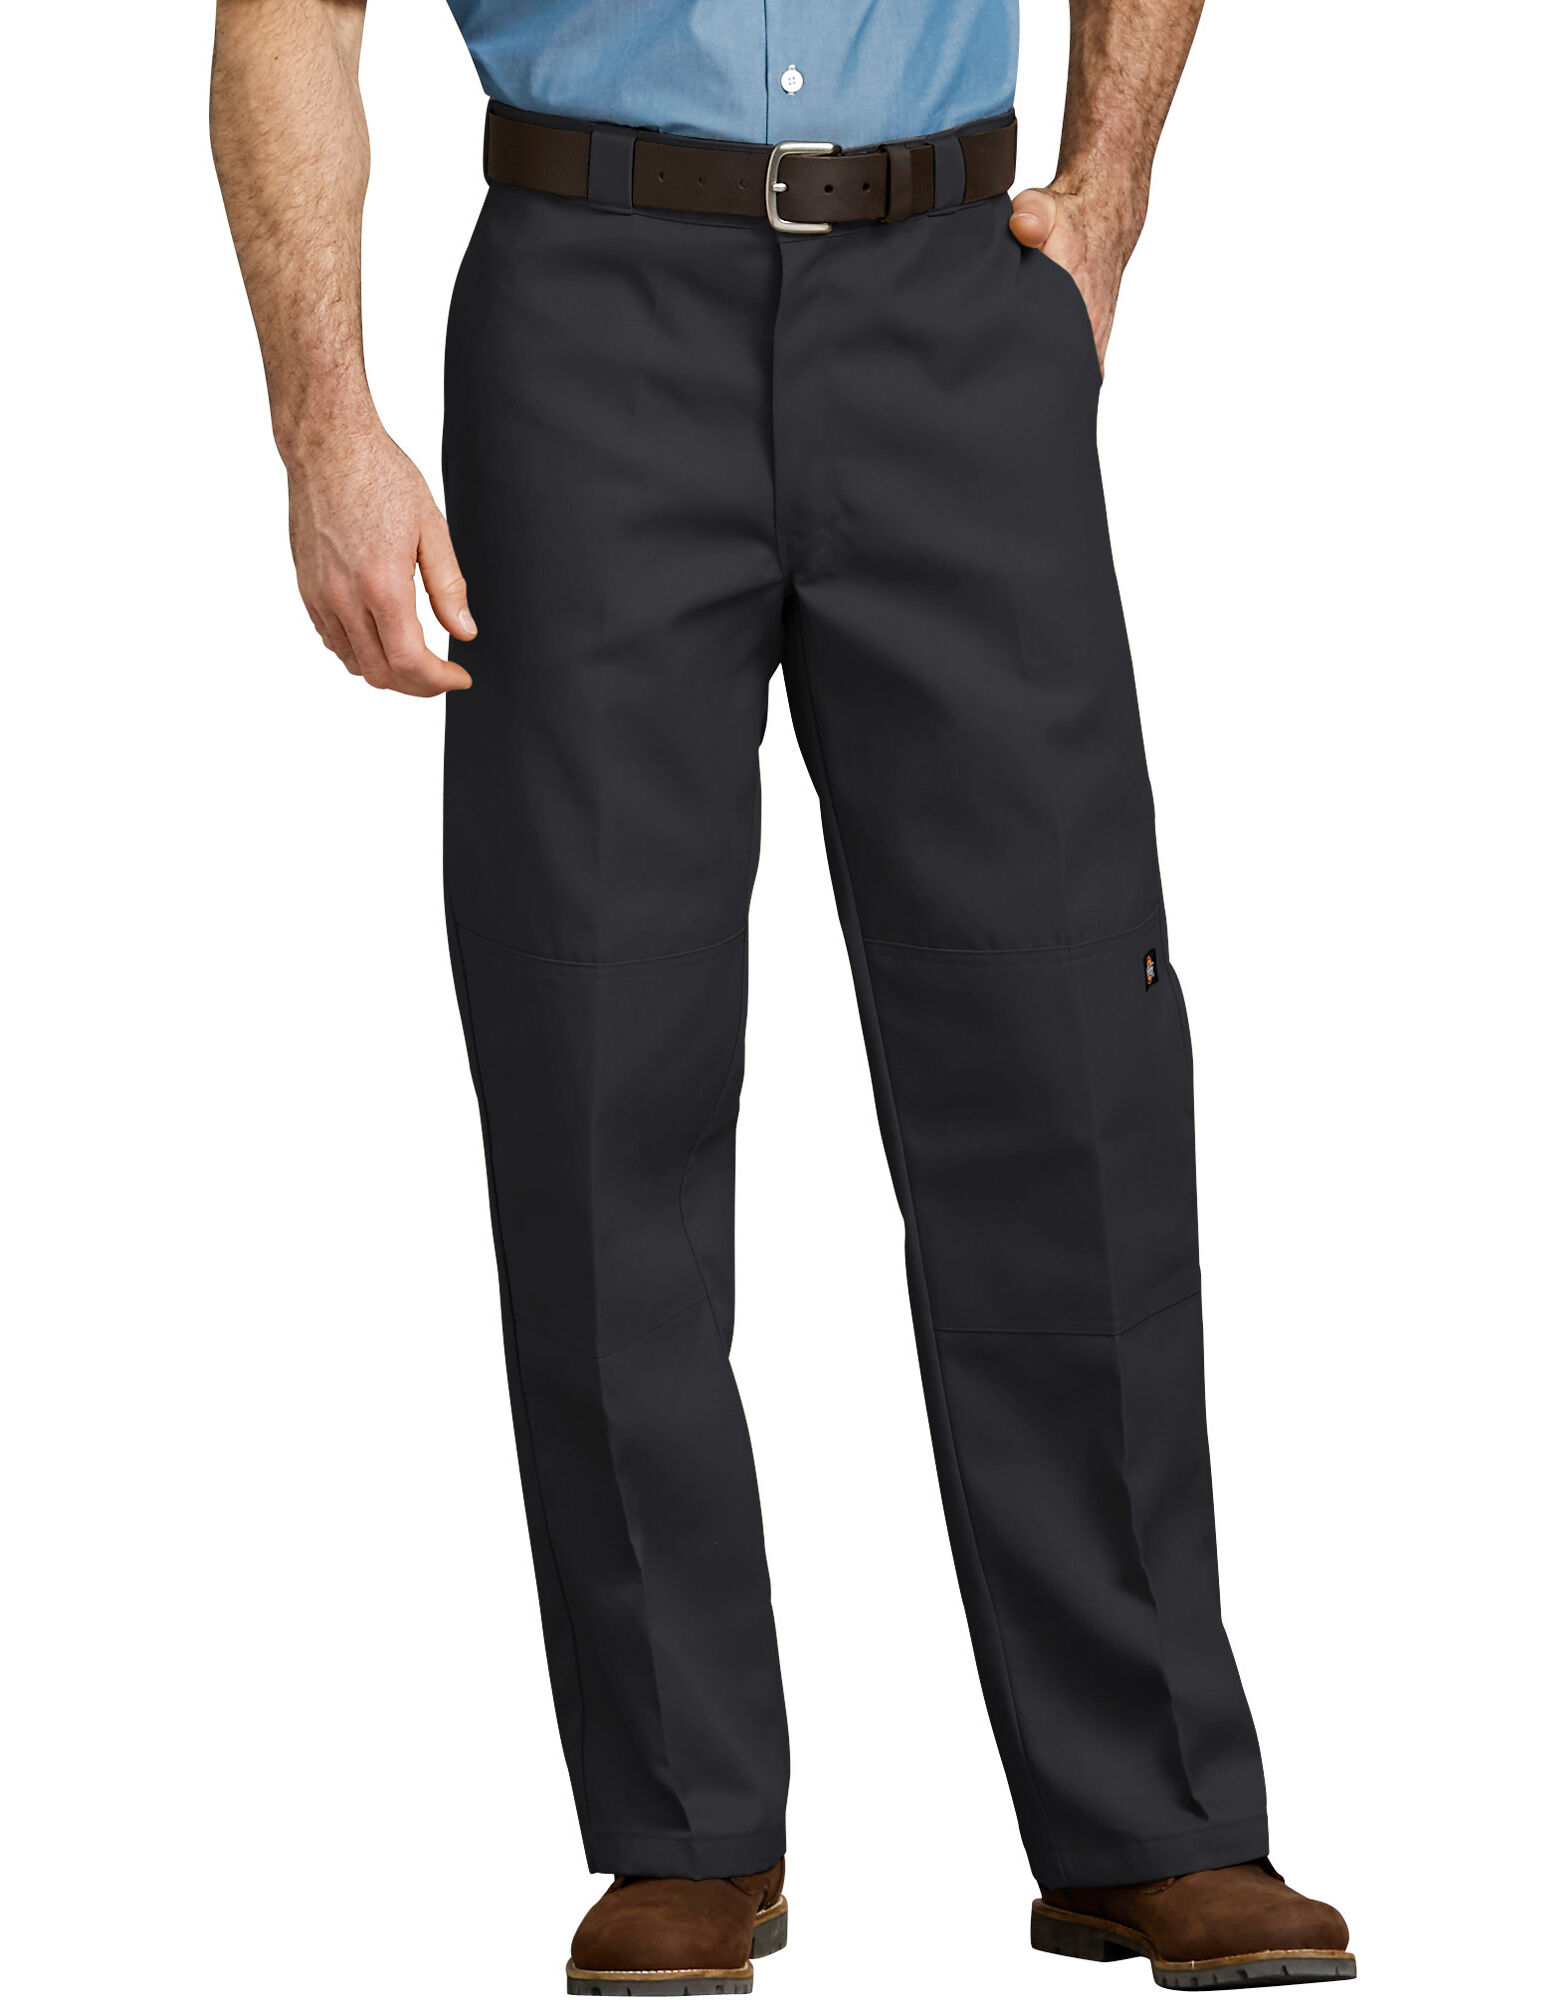 X long dress pants normal fit